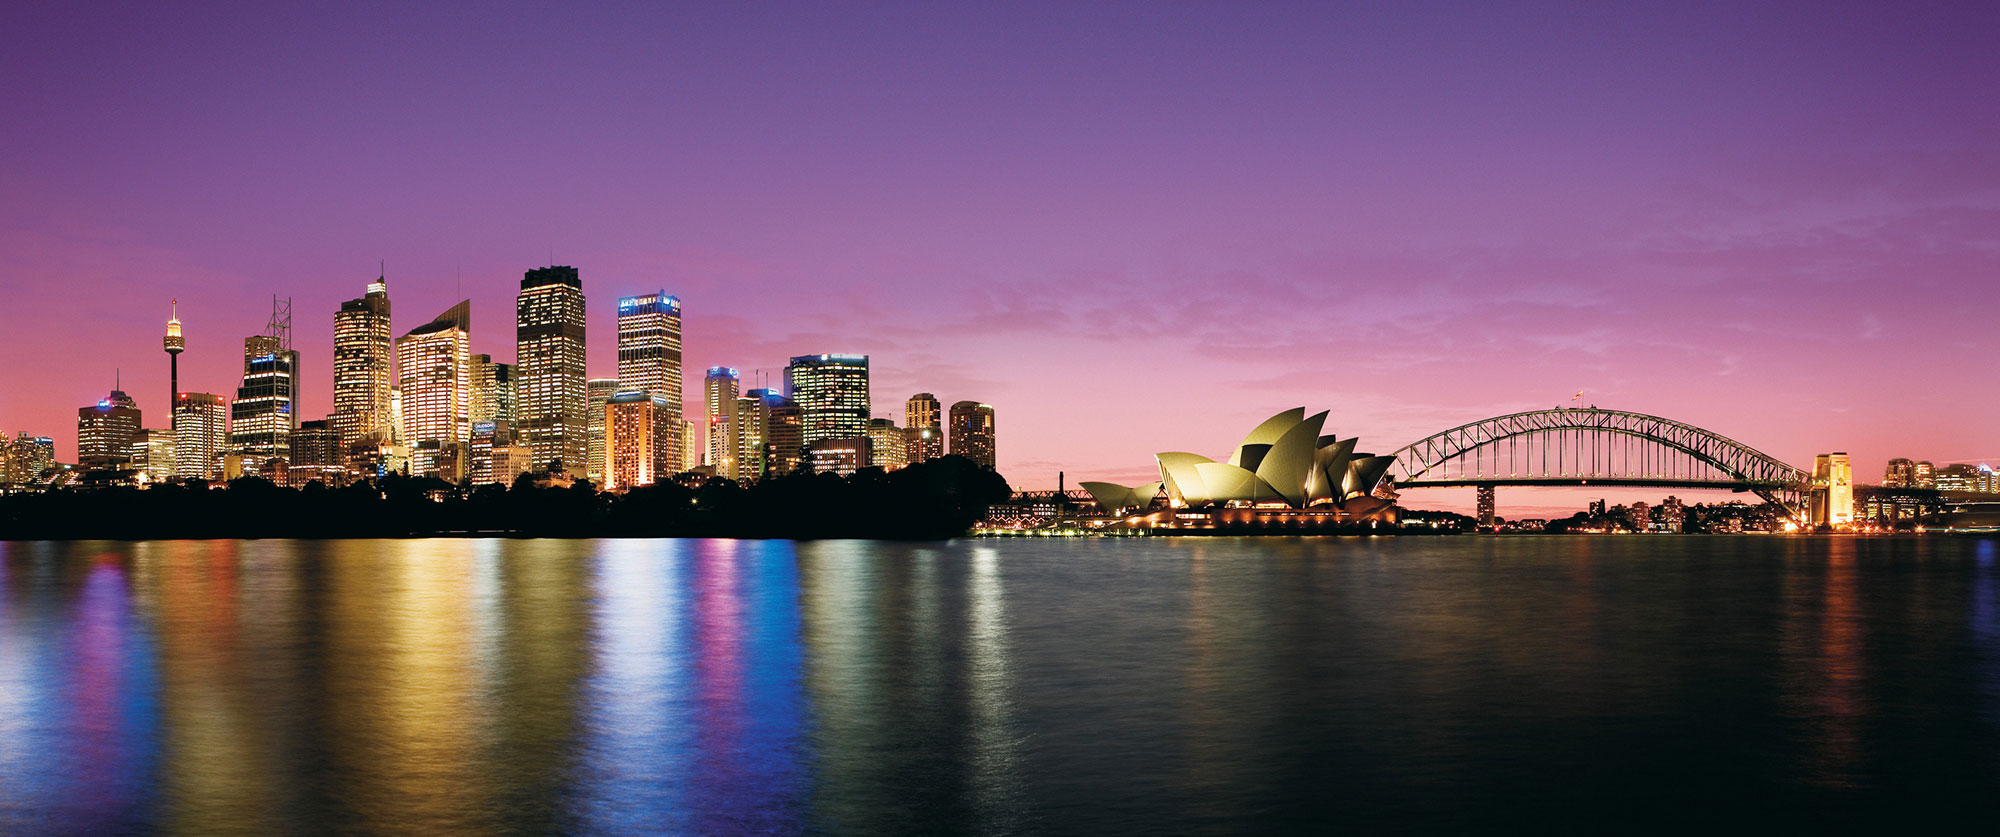 Australia Luxury Vacation Packages - Australia Travel, Honeymoons, Family Vacations, Custom Travel